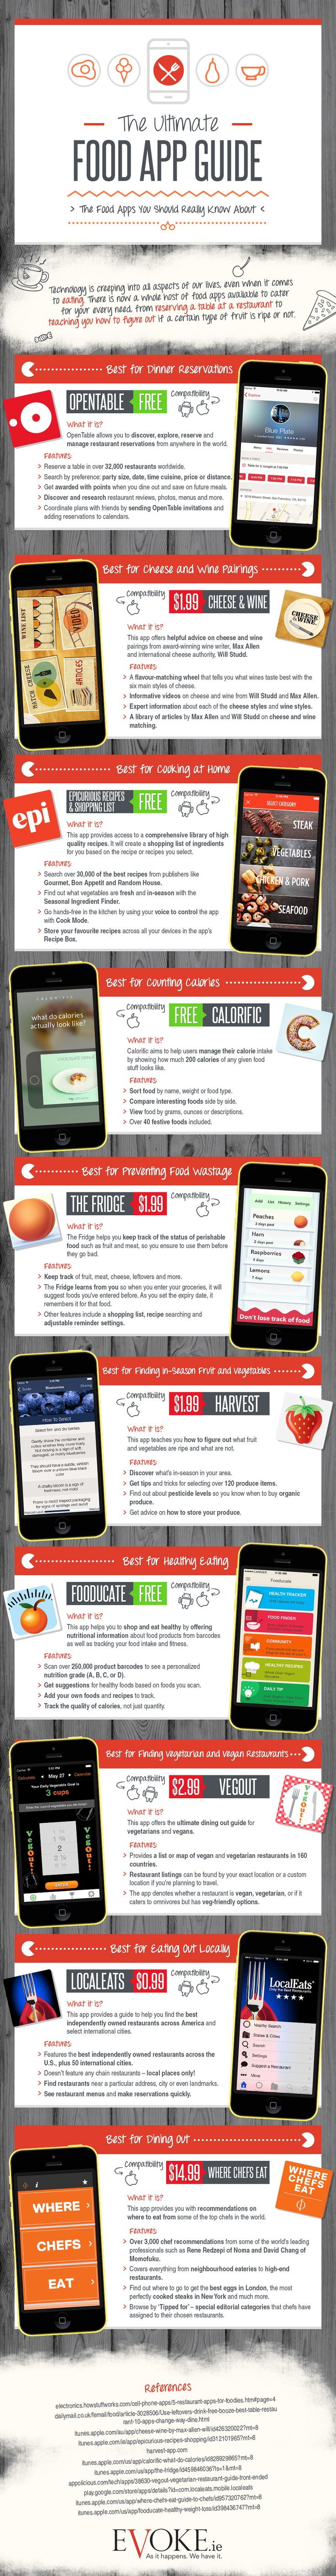 The Food Apps You Should Really Know About